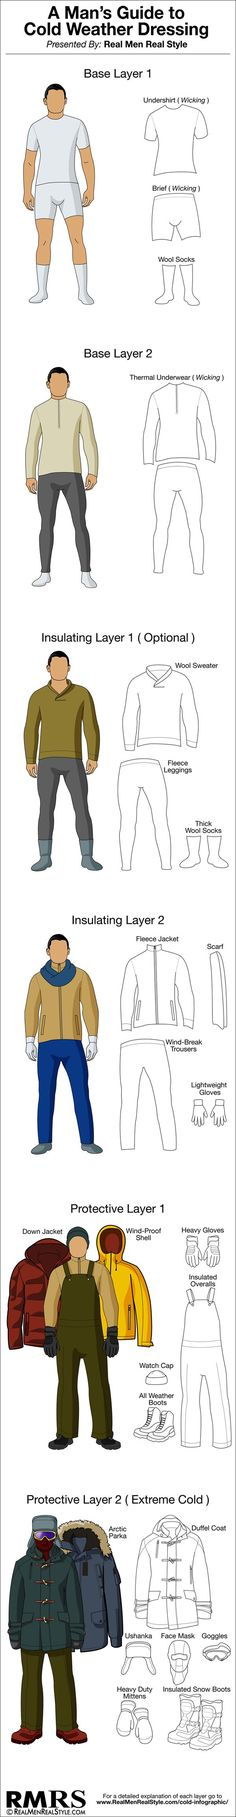 How To Dress Warm In Cold Weather Infographic (via @Antonio Covelo Covelo Covelo Covelo Centeno)